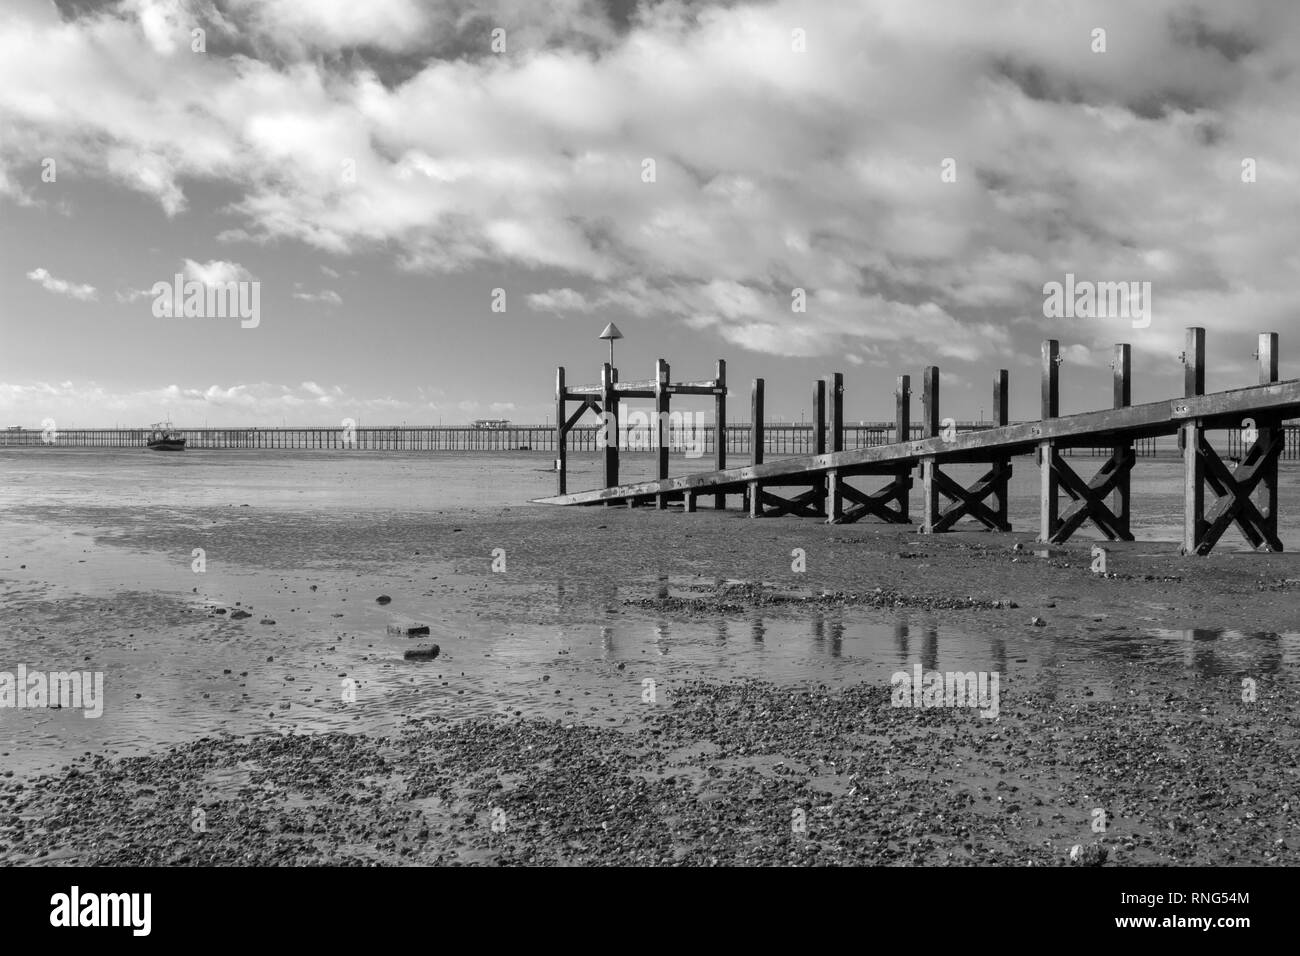 Black and white image of the Jetty on Jubilee beach, Southend-on-Sea, Essex, England Stock Photo